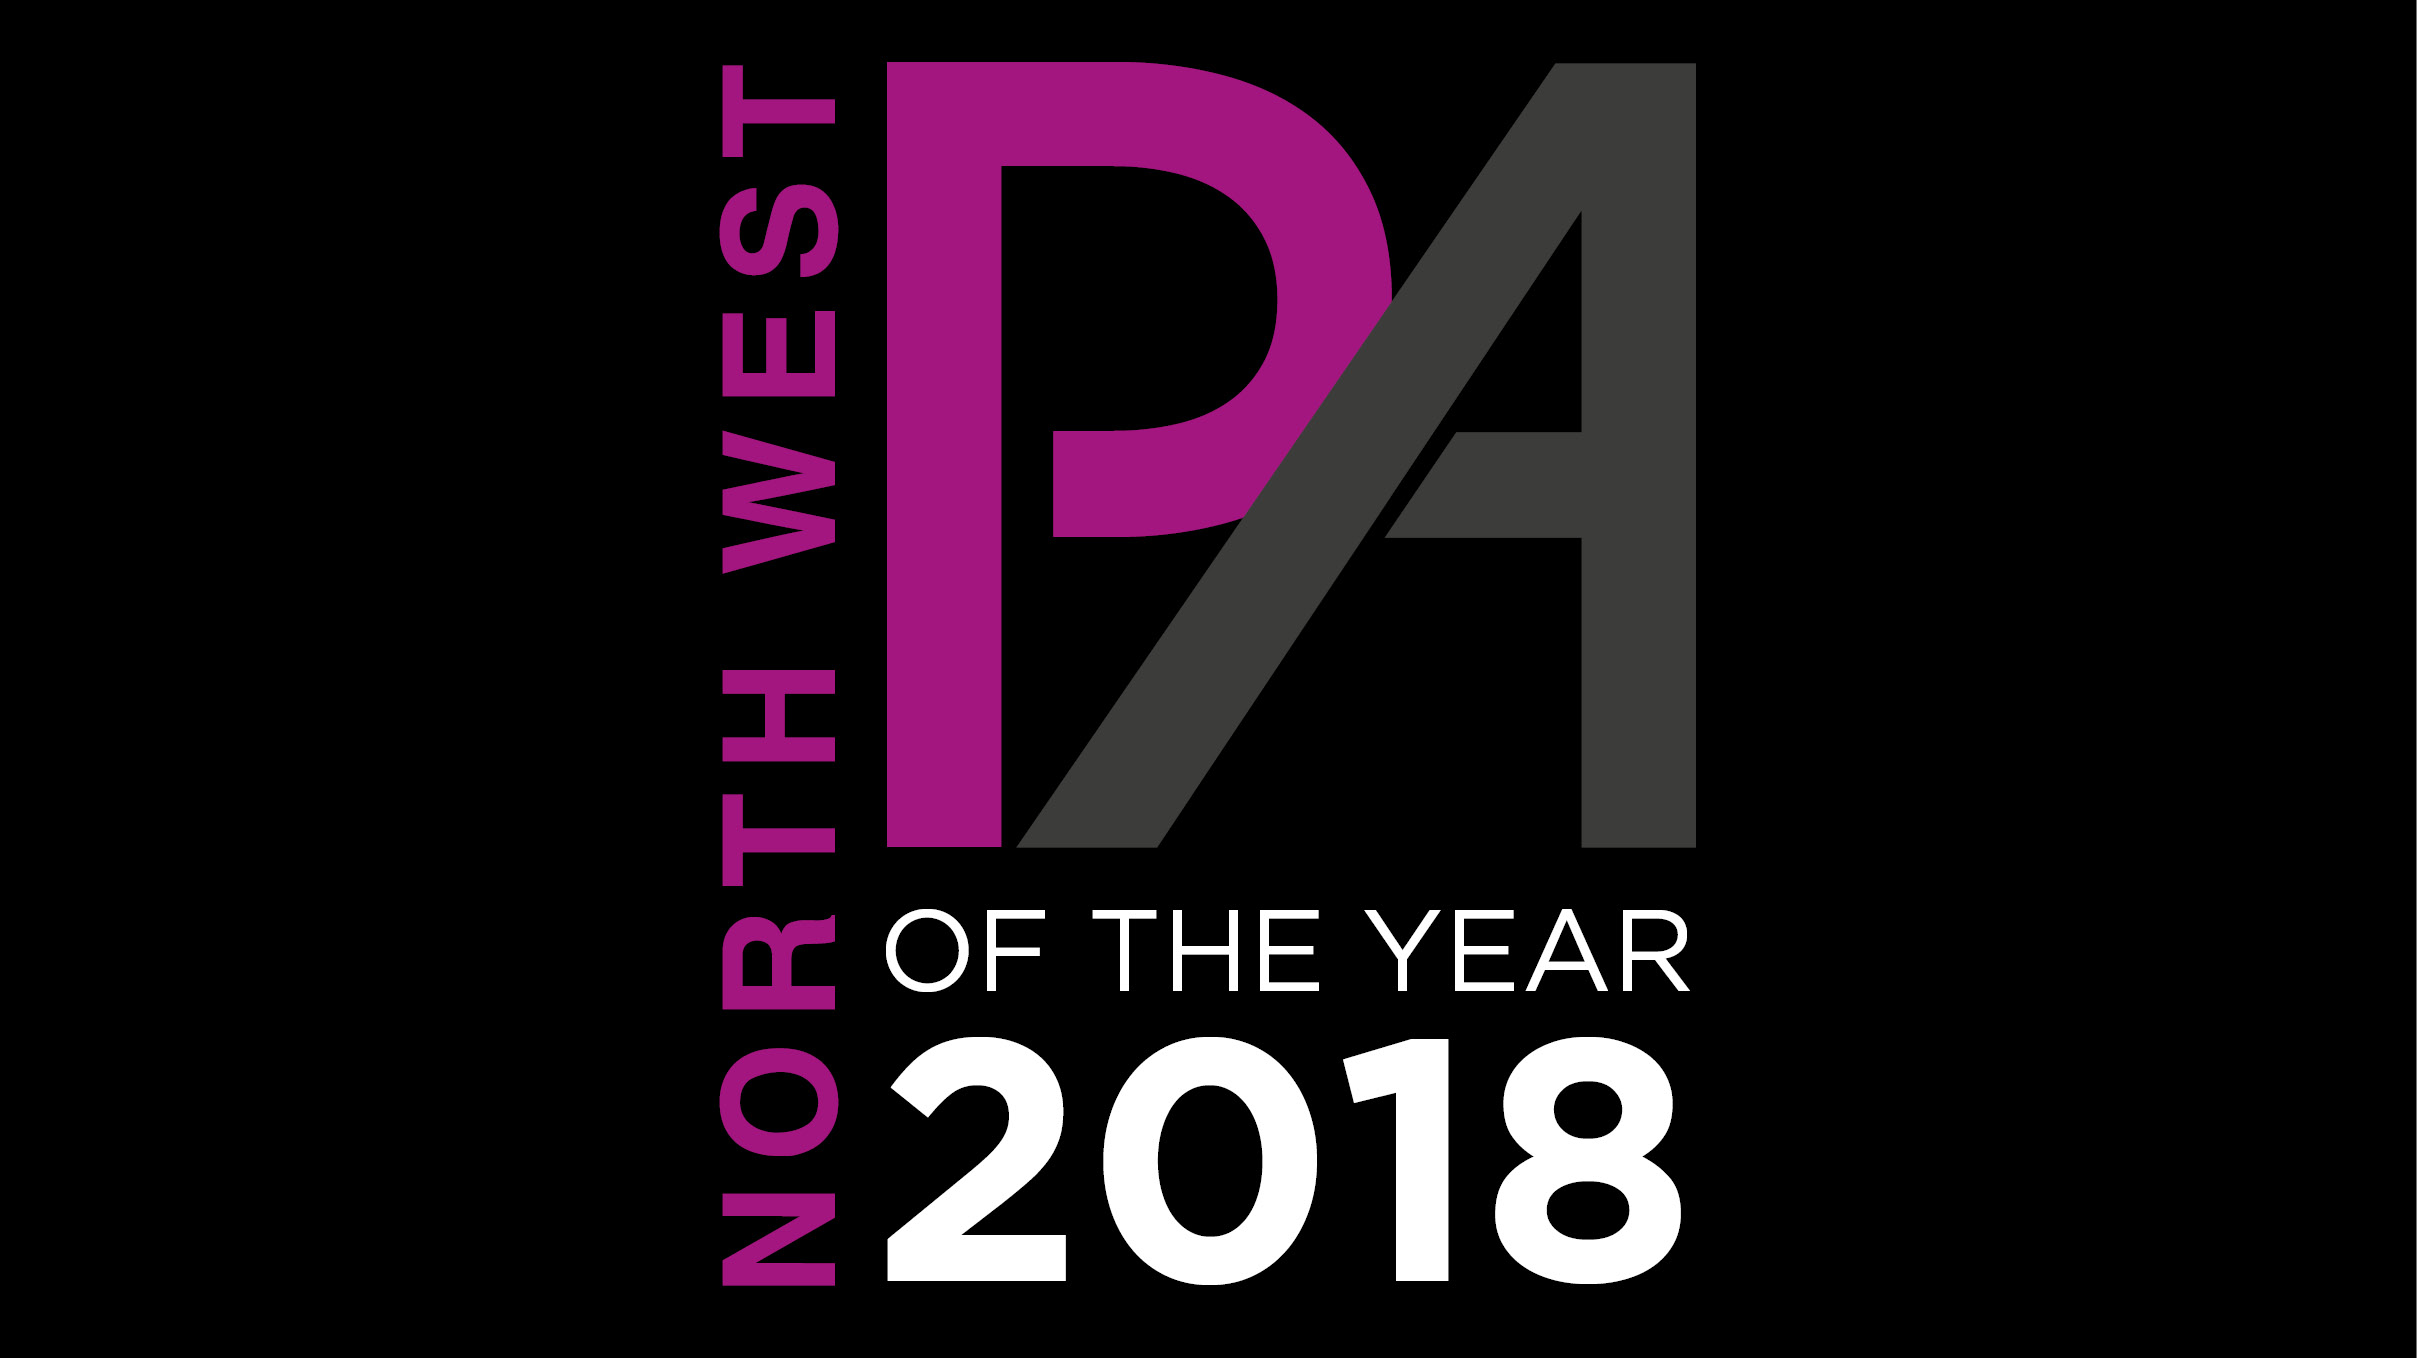 North West PA of the Year Awards